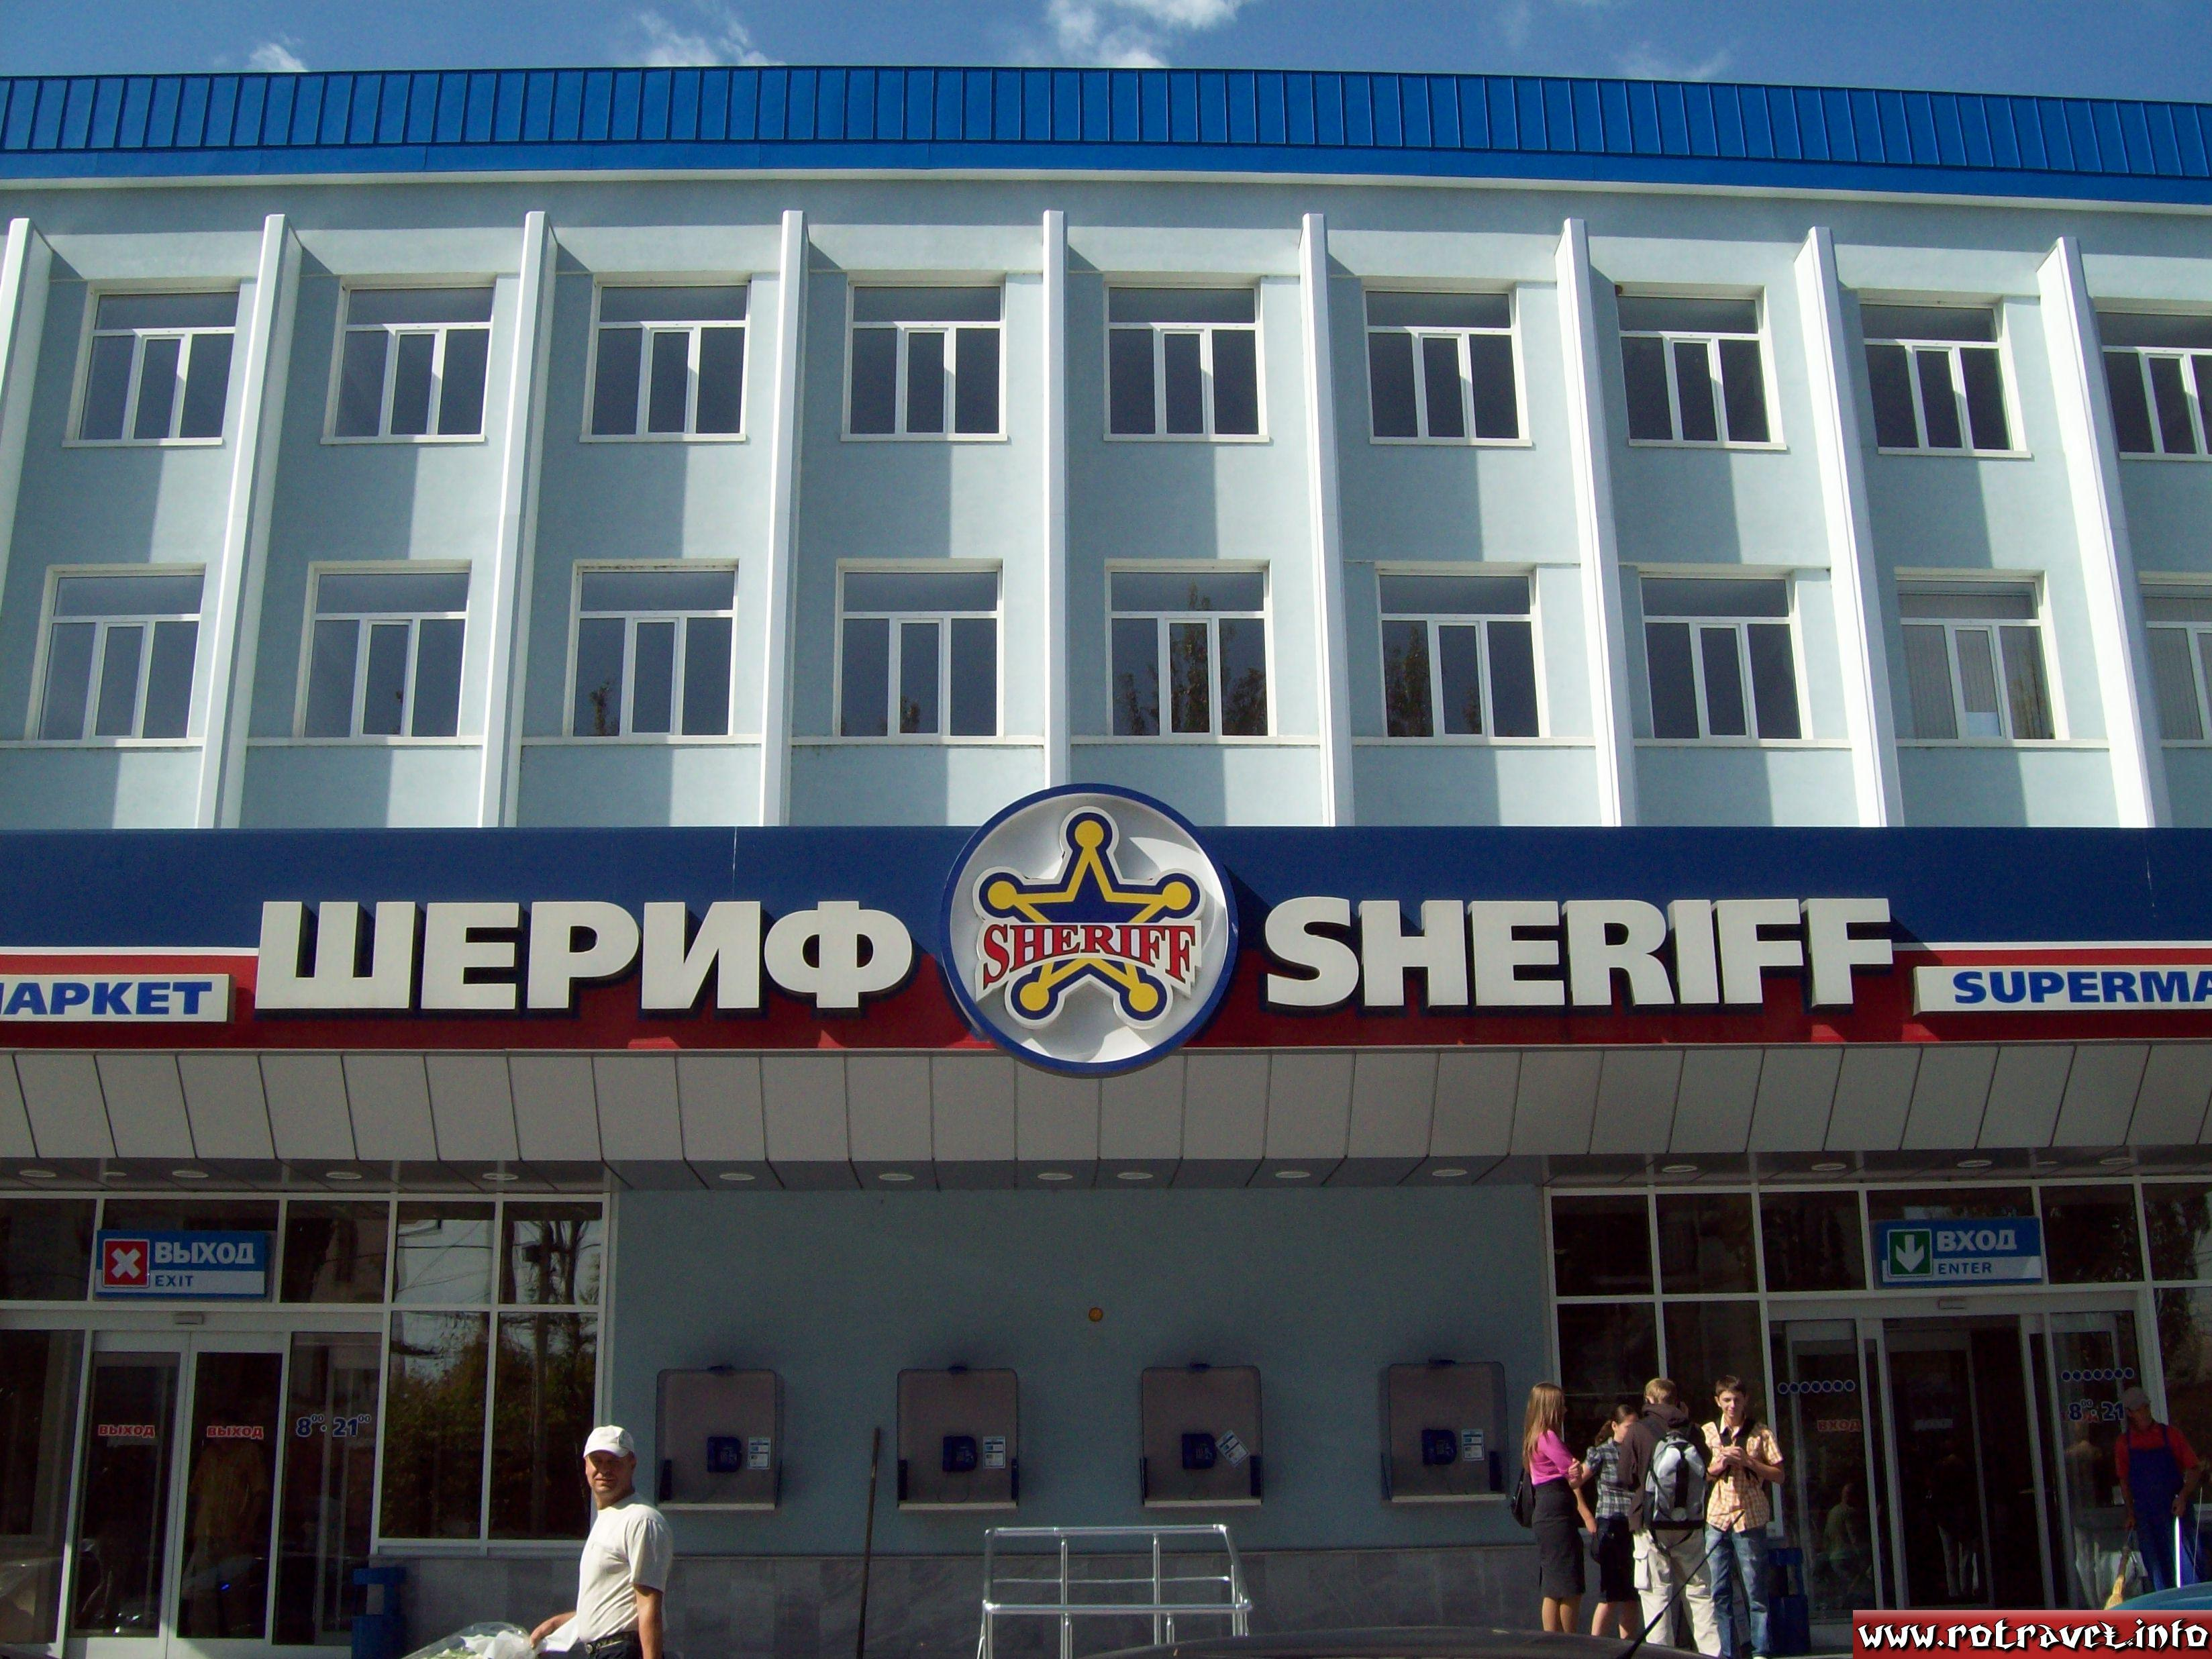 Sheriff supermarket